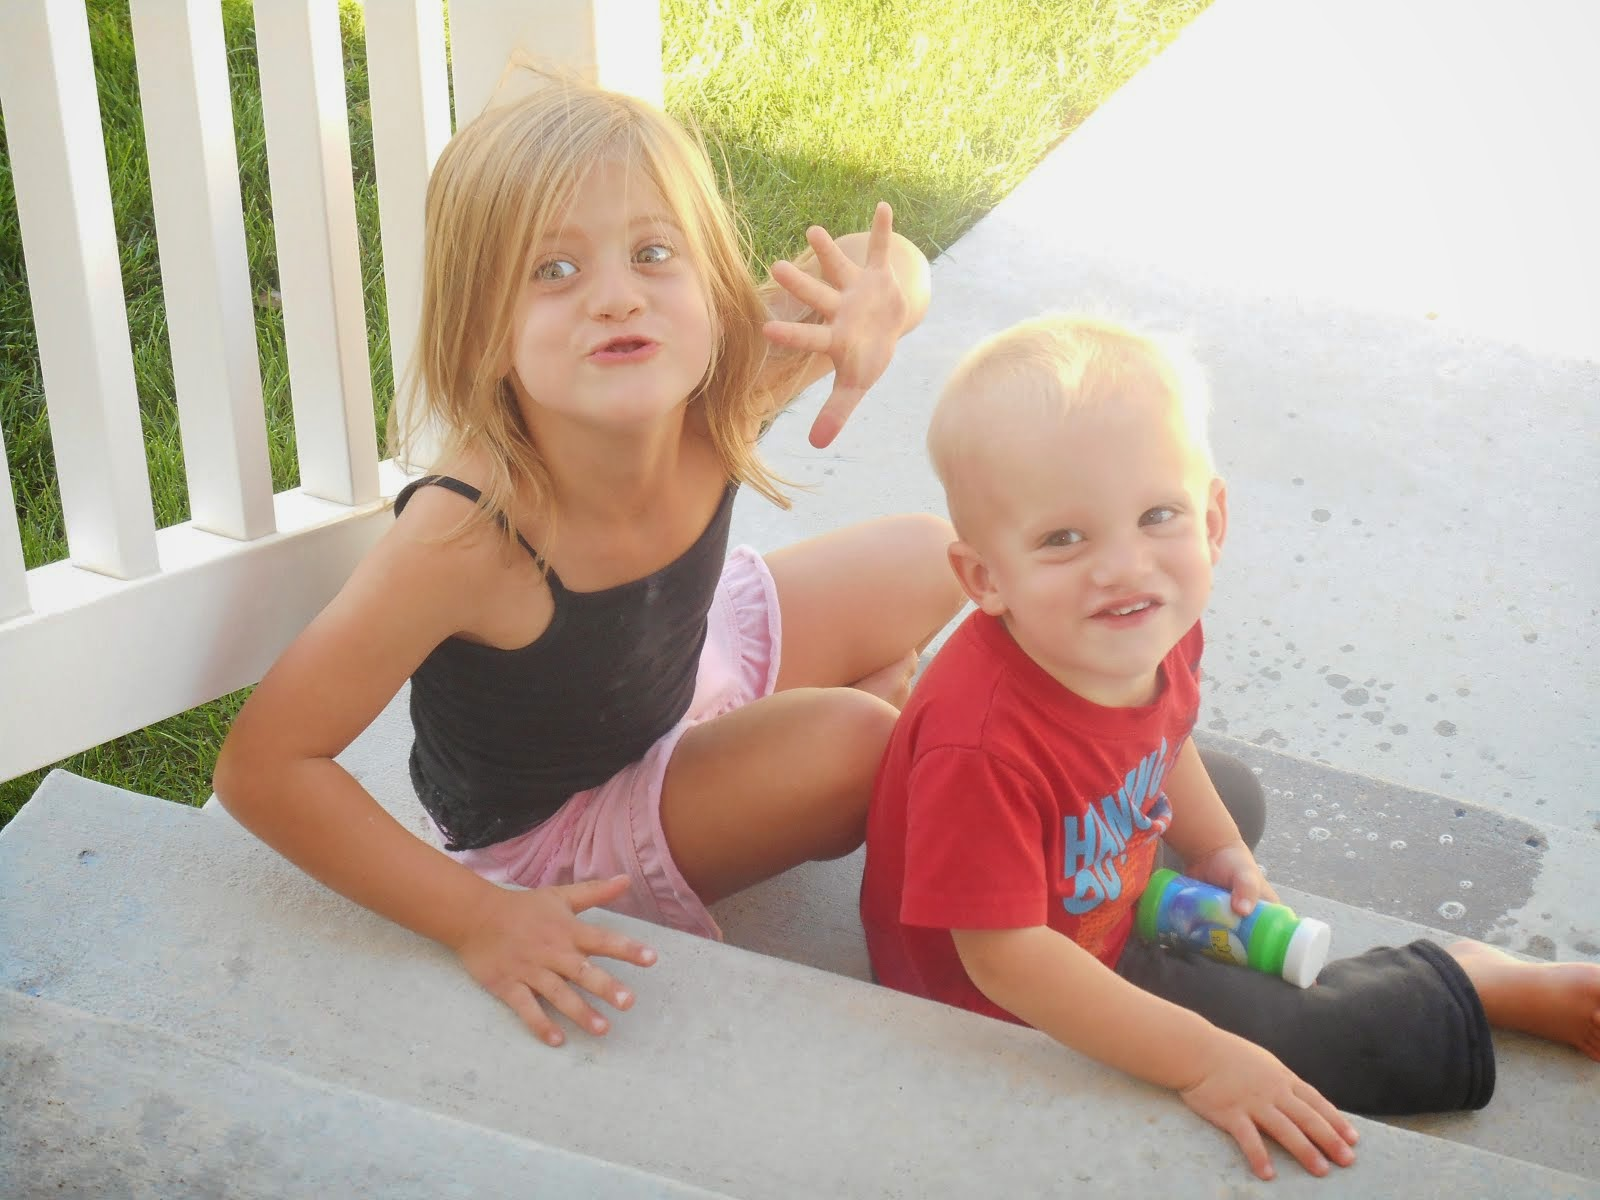 Our crazy kids!